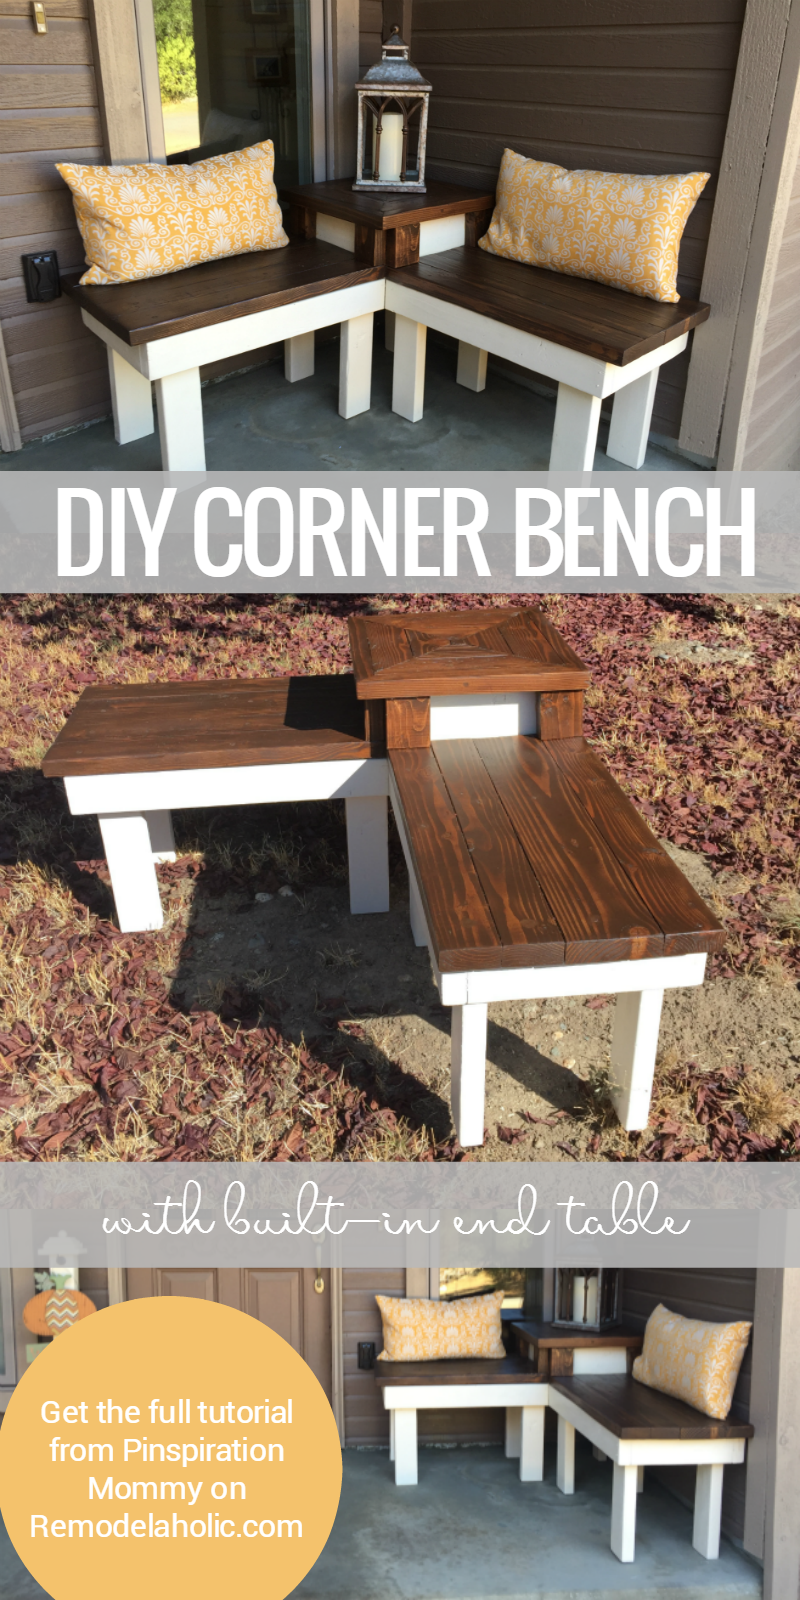 This DIY Corner Bench Has A Built In End Table, Perfect For A Front Porch  Welcoming Display Or Back Patio Seating For A BBQ Or Party!